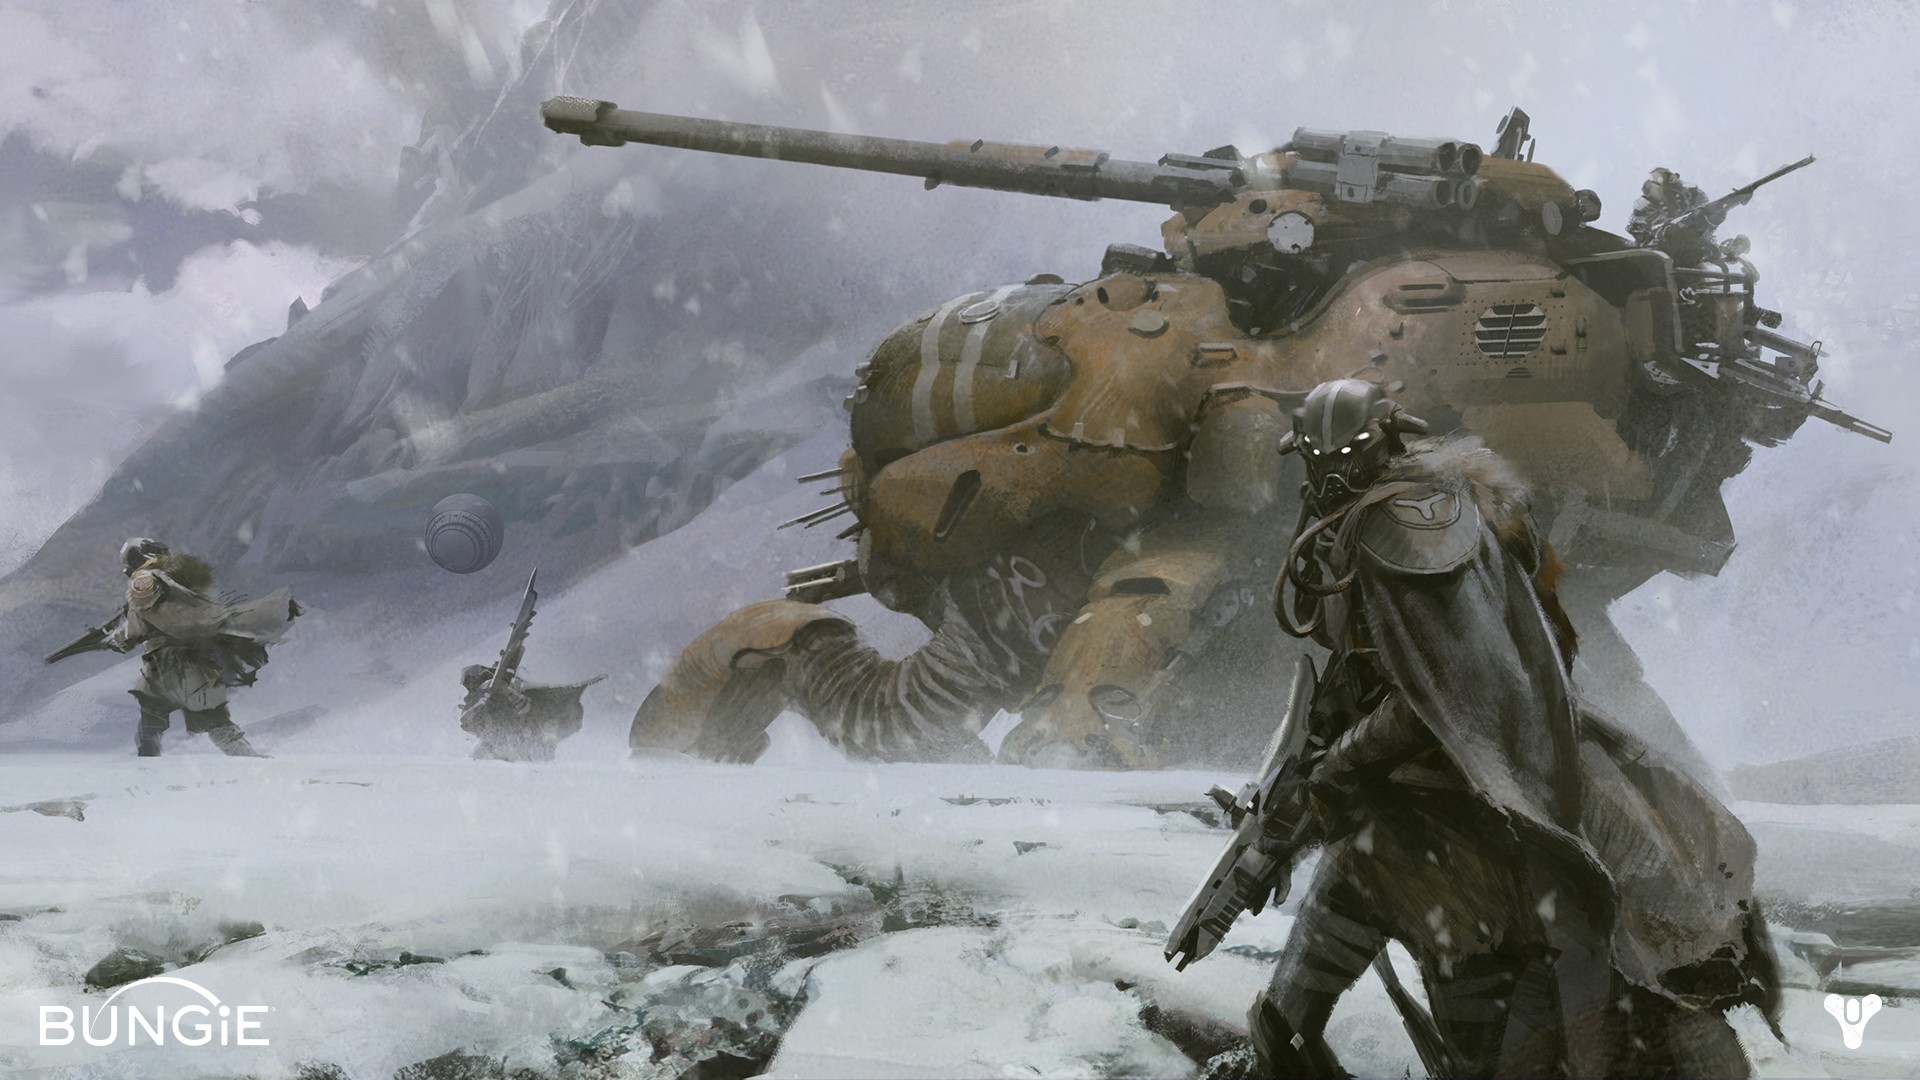 Destiny Bungie and Activisions upcoming original IP aims to 1920x1080